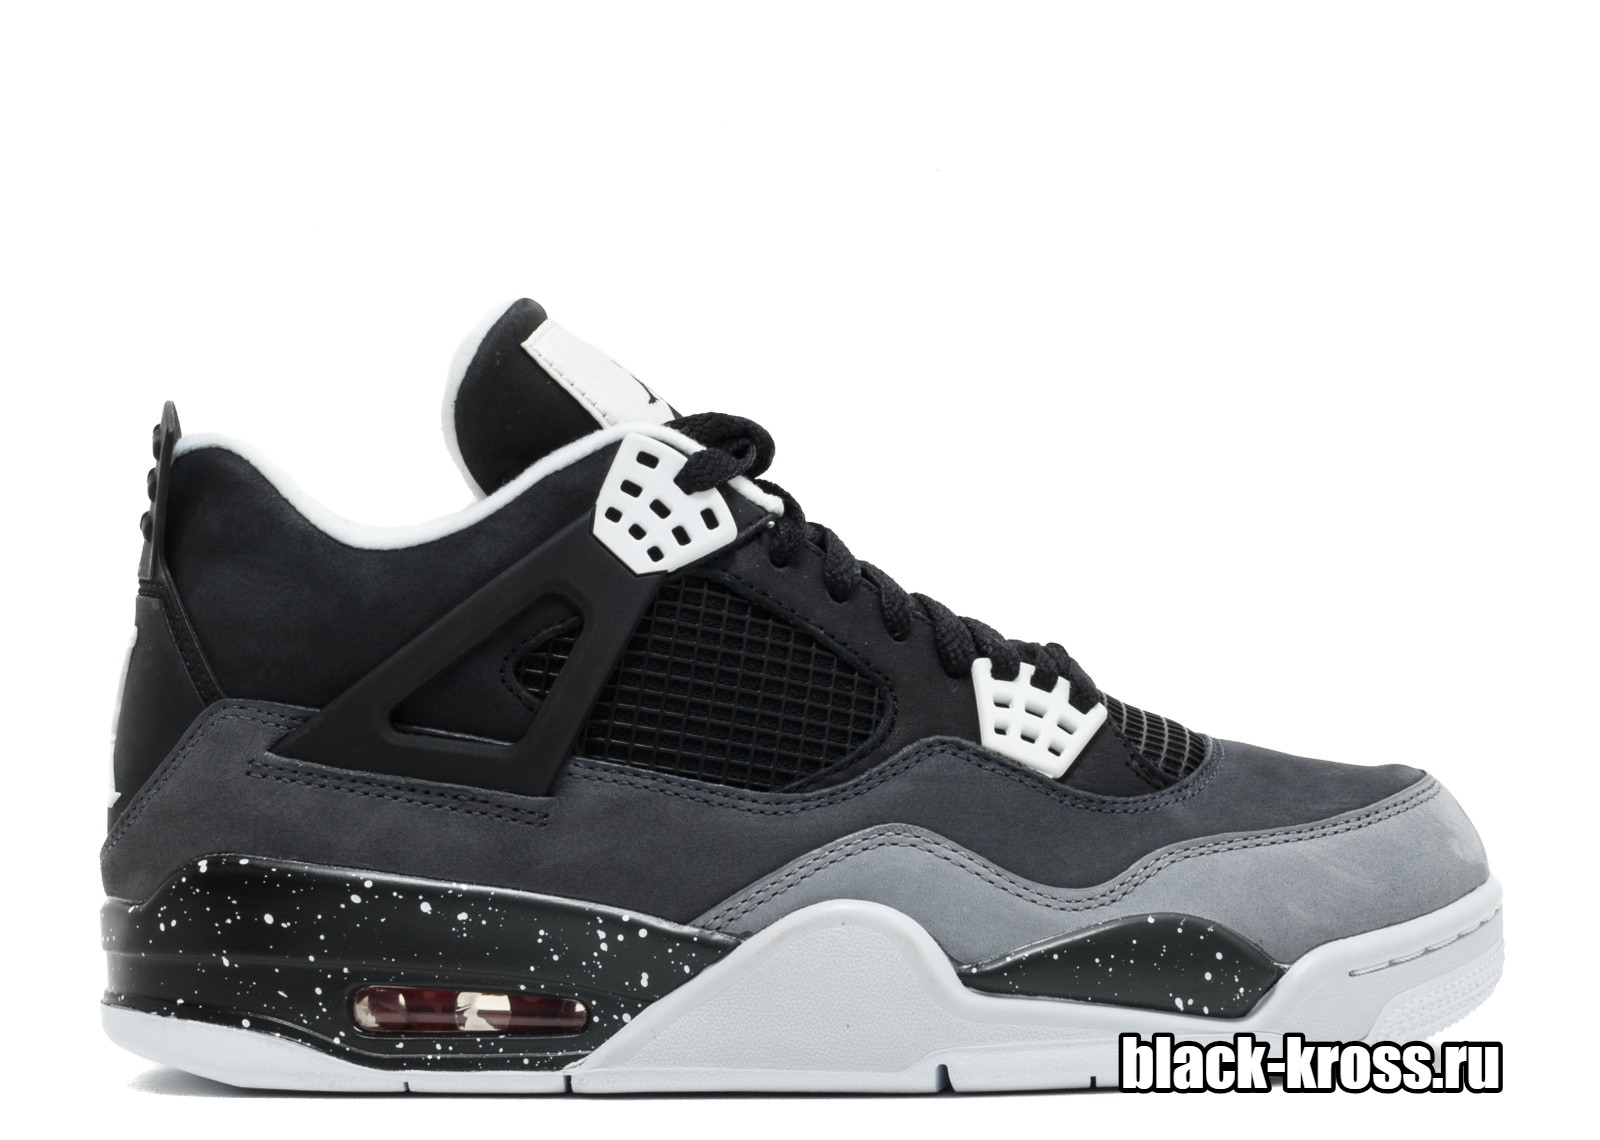 NIKE AIR JORDAN IV Black & Grey (41-45)